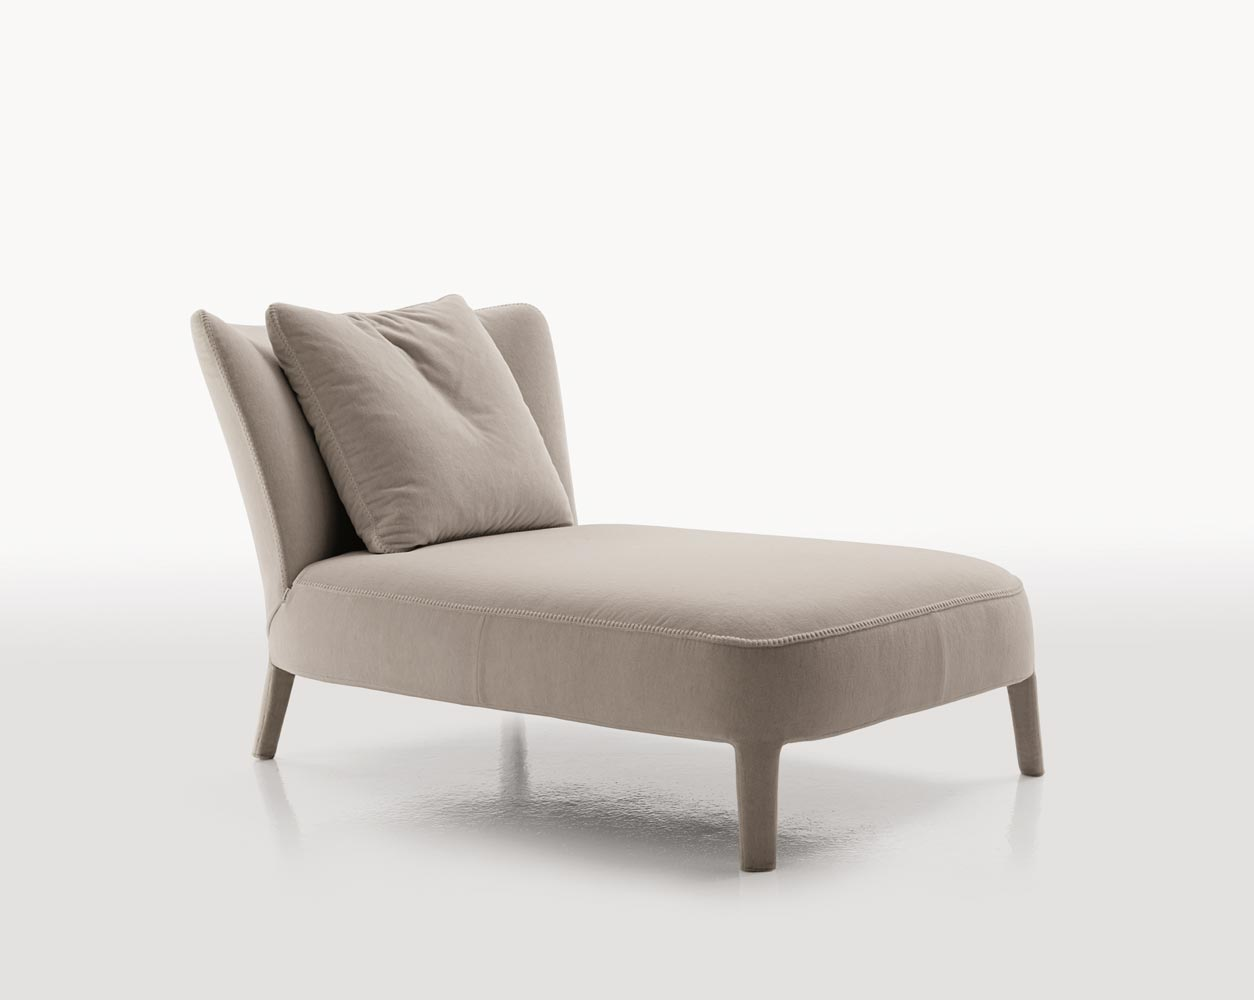 Maxalto Sofa Rund Maxalto B Andb Italia Febo Chaise Longue Buy From Campbell